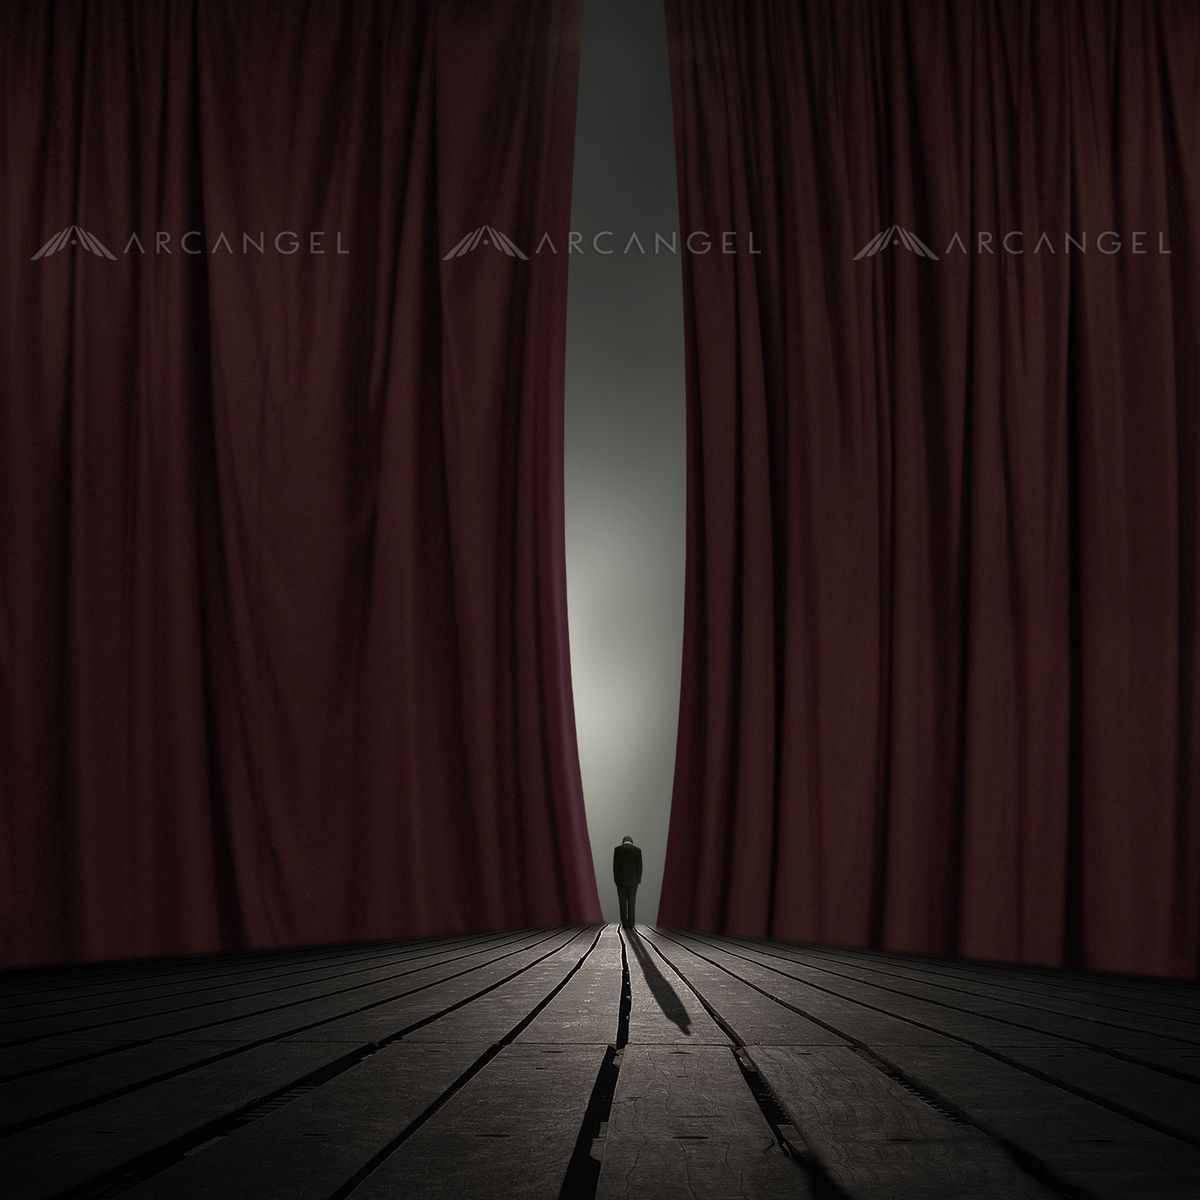 Black theatre curtain - Arcangel Person Standing Underneath Stage Curtains By Philip Mckay